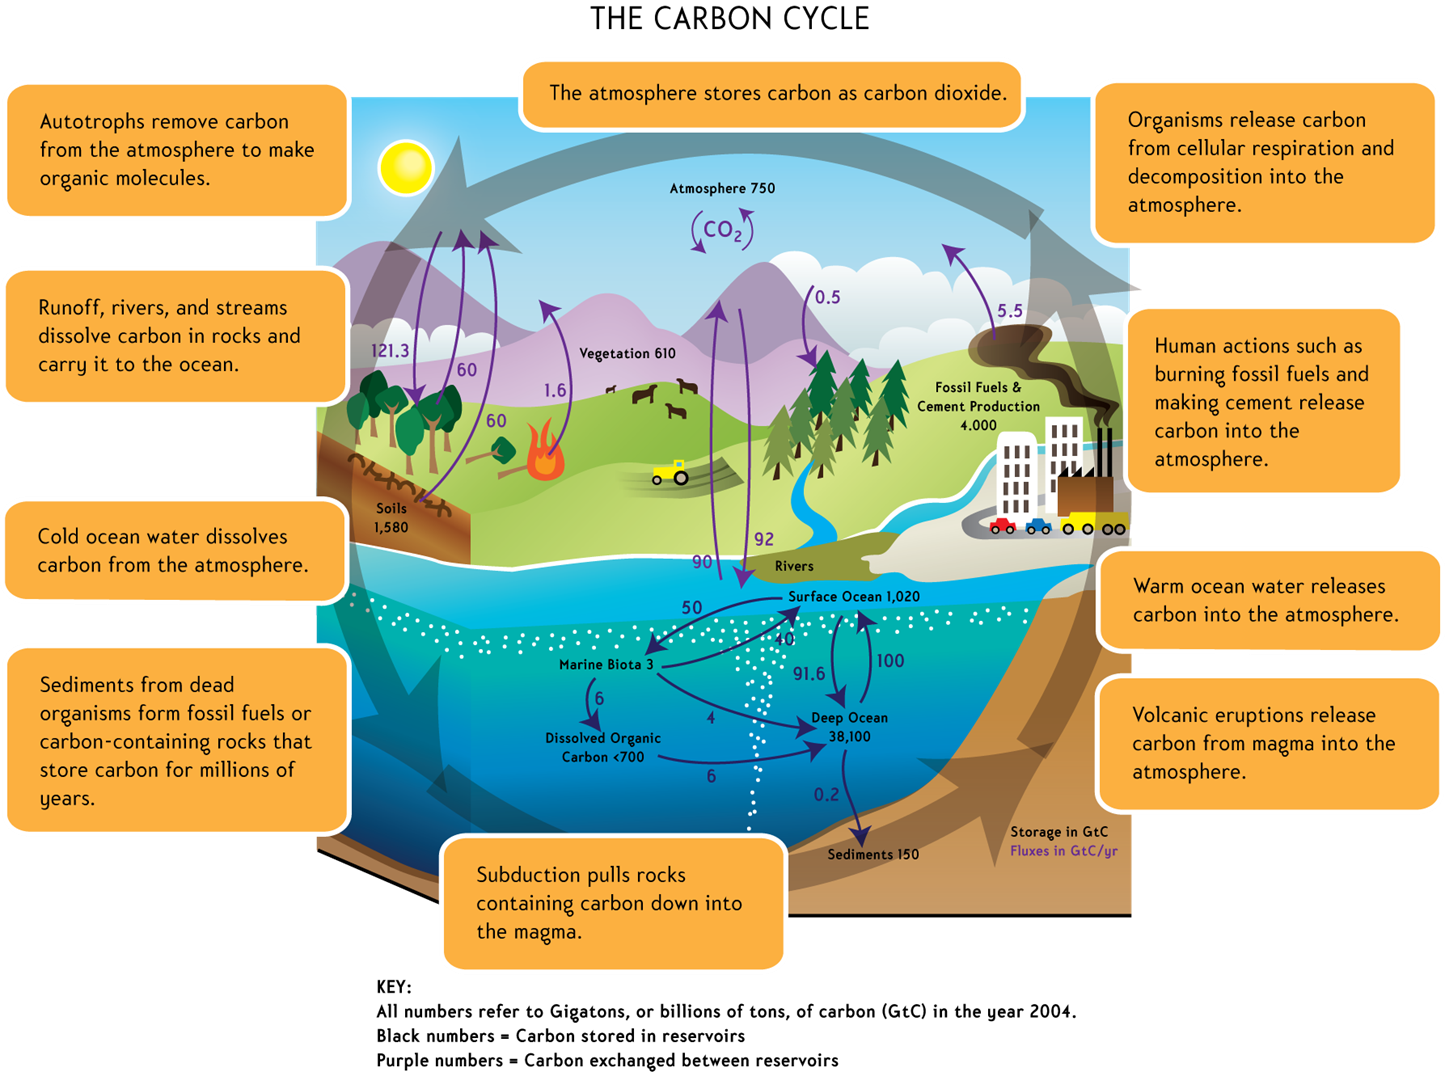 human activities global warming and climate change environmental sciences essay Short essay on climate change and global warming are referred to as climate change human activity has had a large impact on the global climate system.